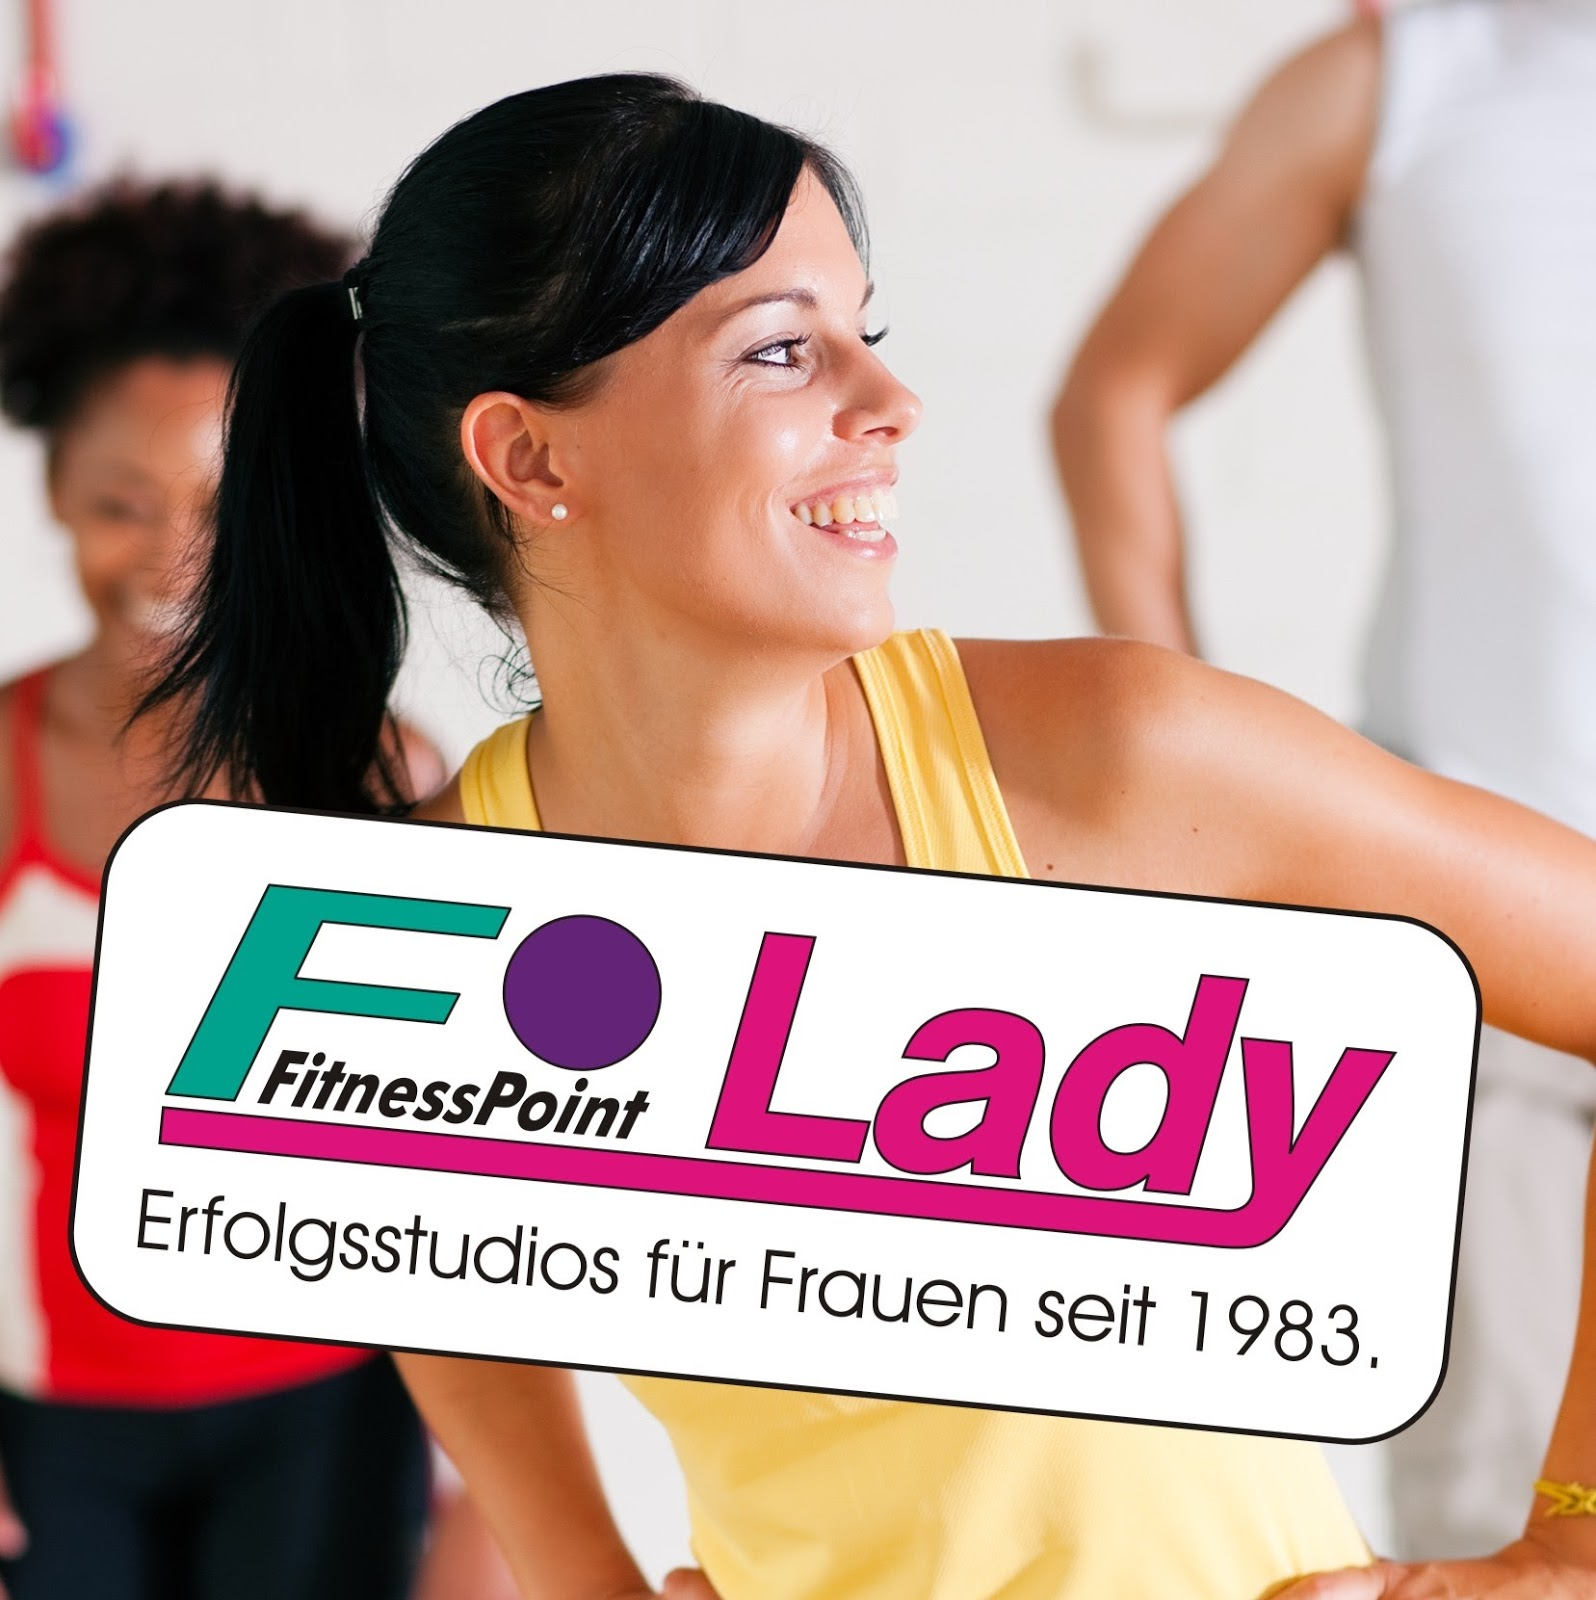 FitnessPoint Lady - photo